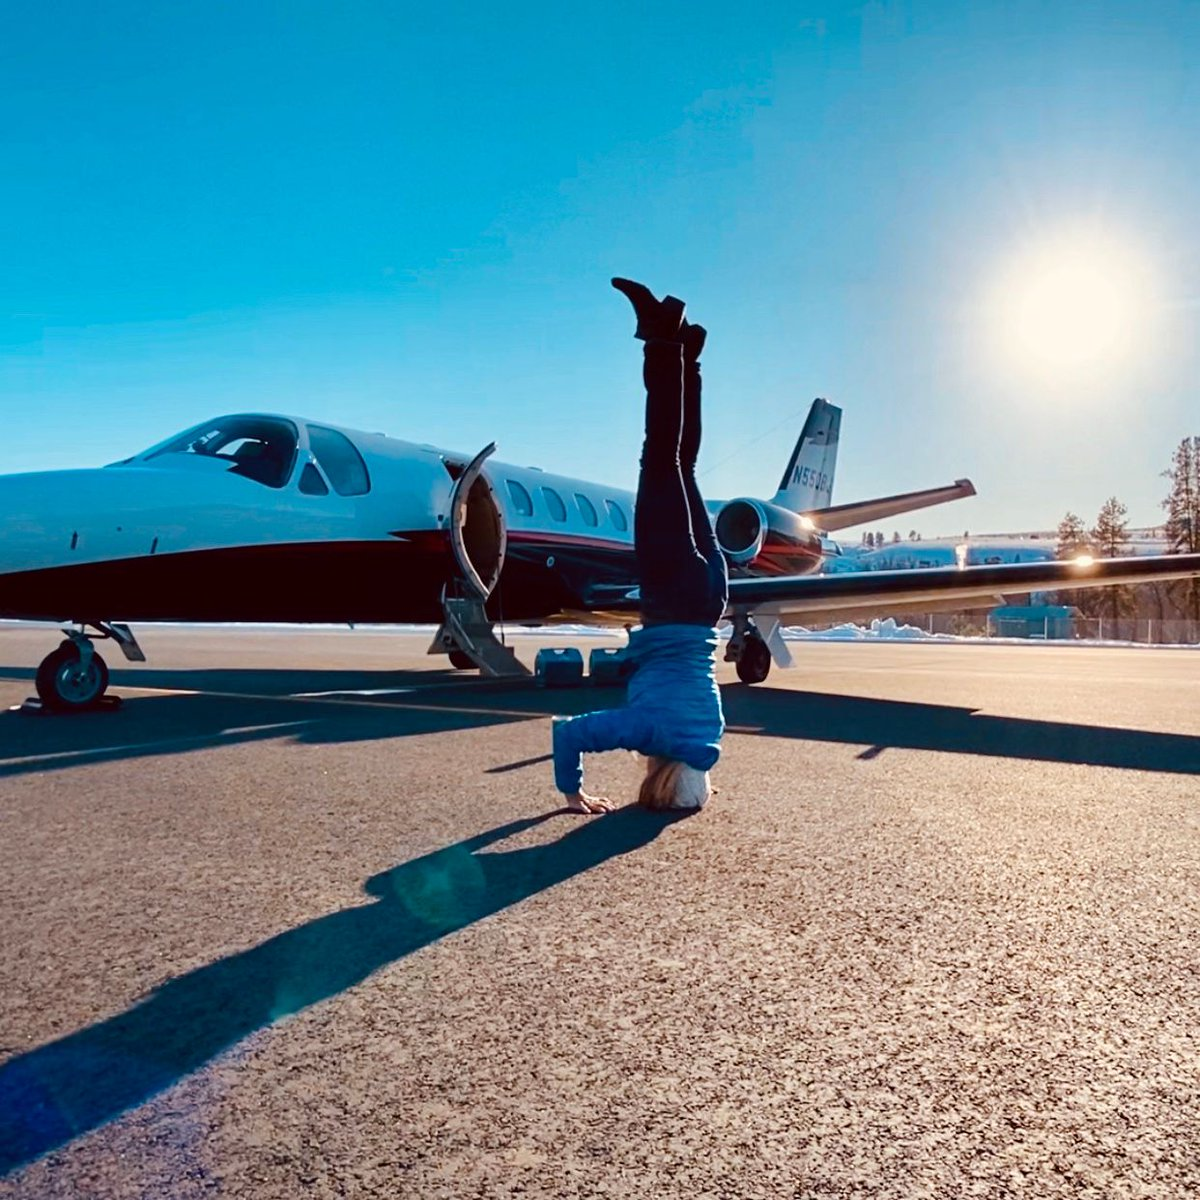 Yogo by the private jet? Acceptable. Fly Erin Air . . .  #flyerinair #businessjet #corporatejets  #instagramaviation #entrepreneur #luxurytravel #airplane #jet #privatejet  #aviation #plane #flying #jet #jetsetter #cessnacitation #airplane #aviation #luxurytravel #travel